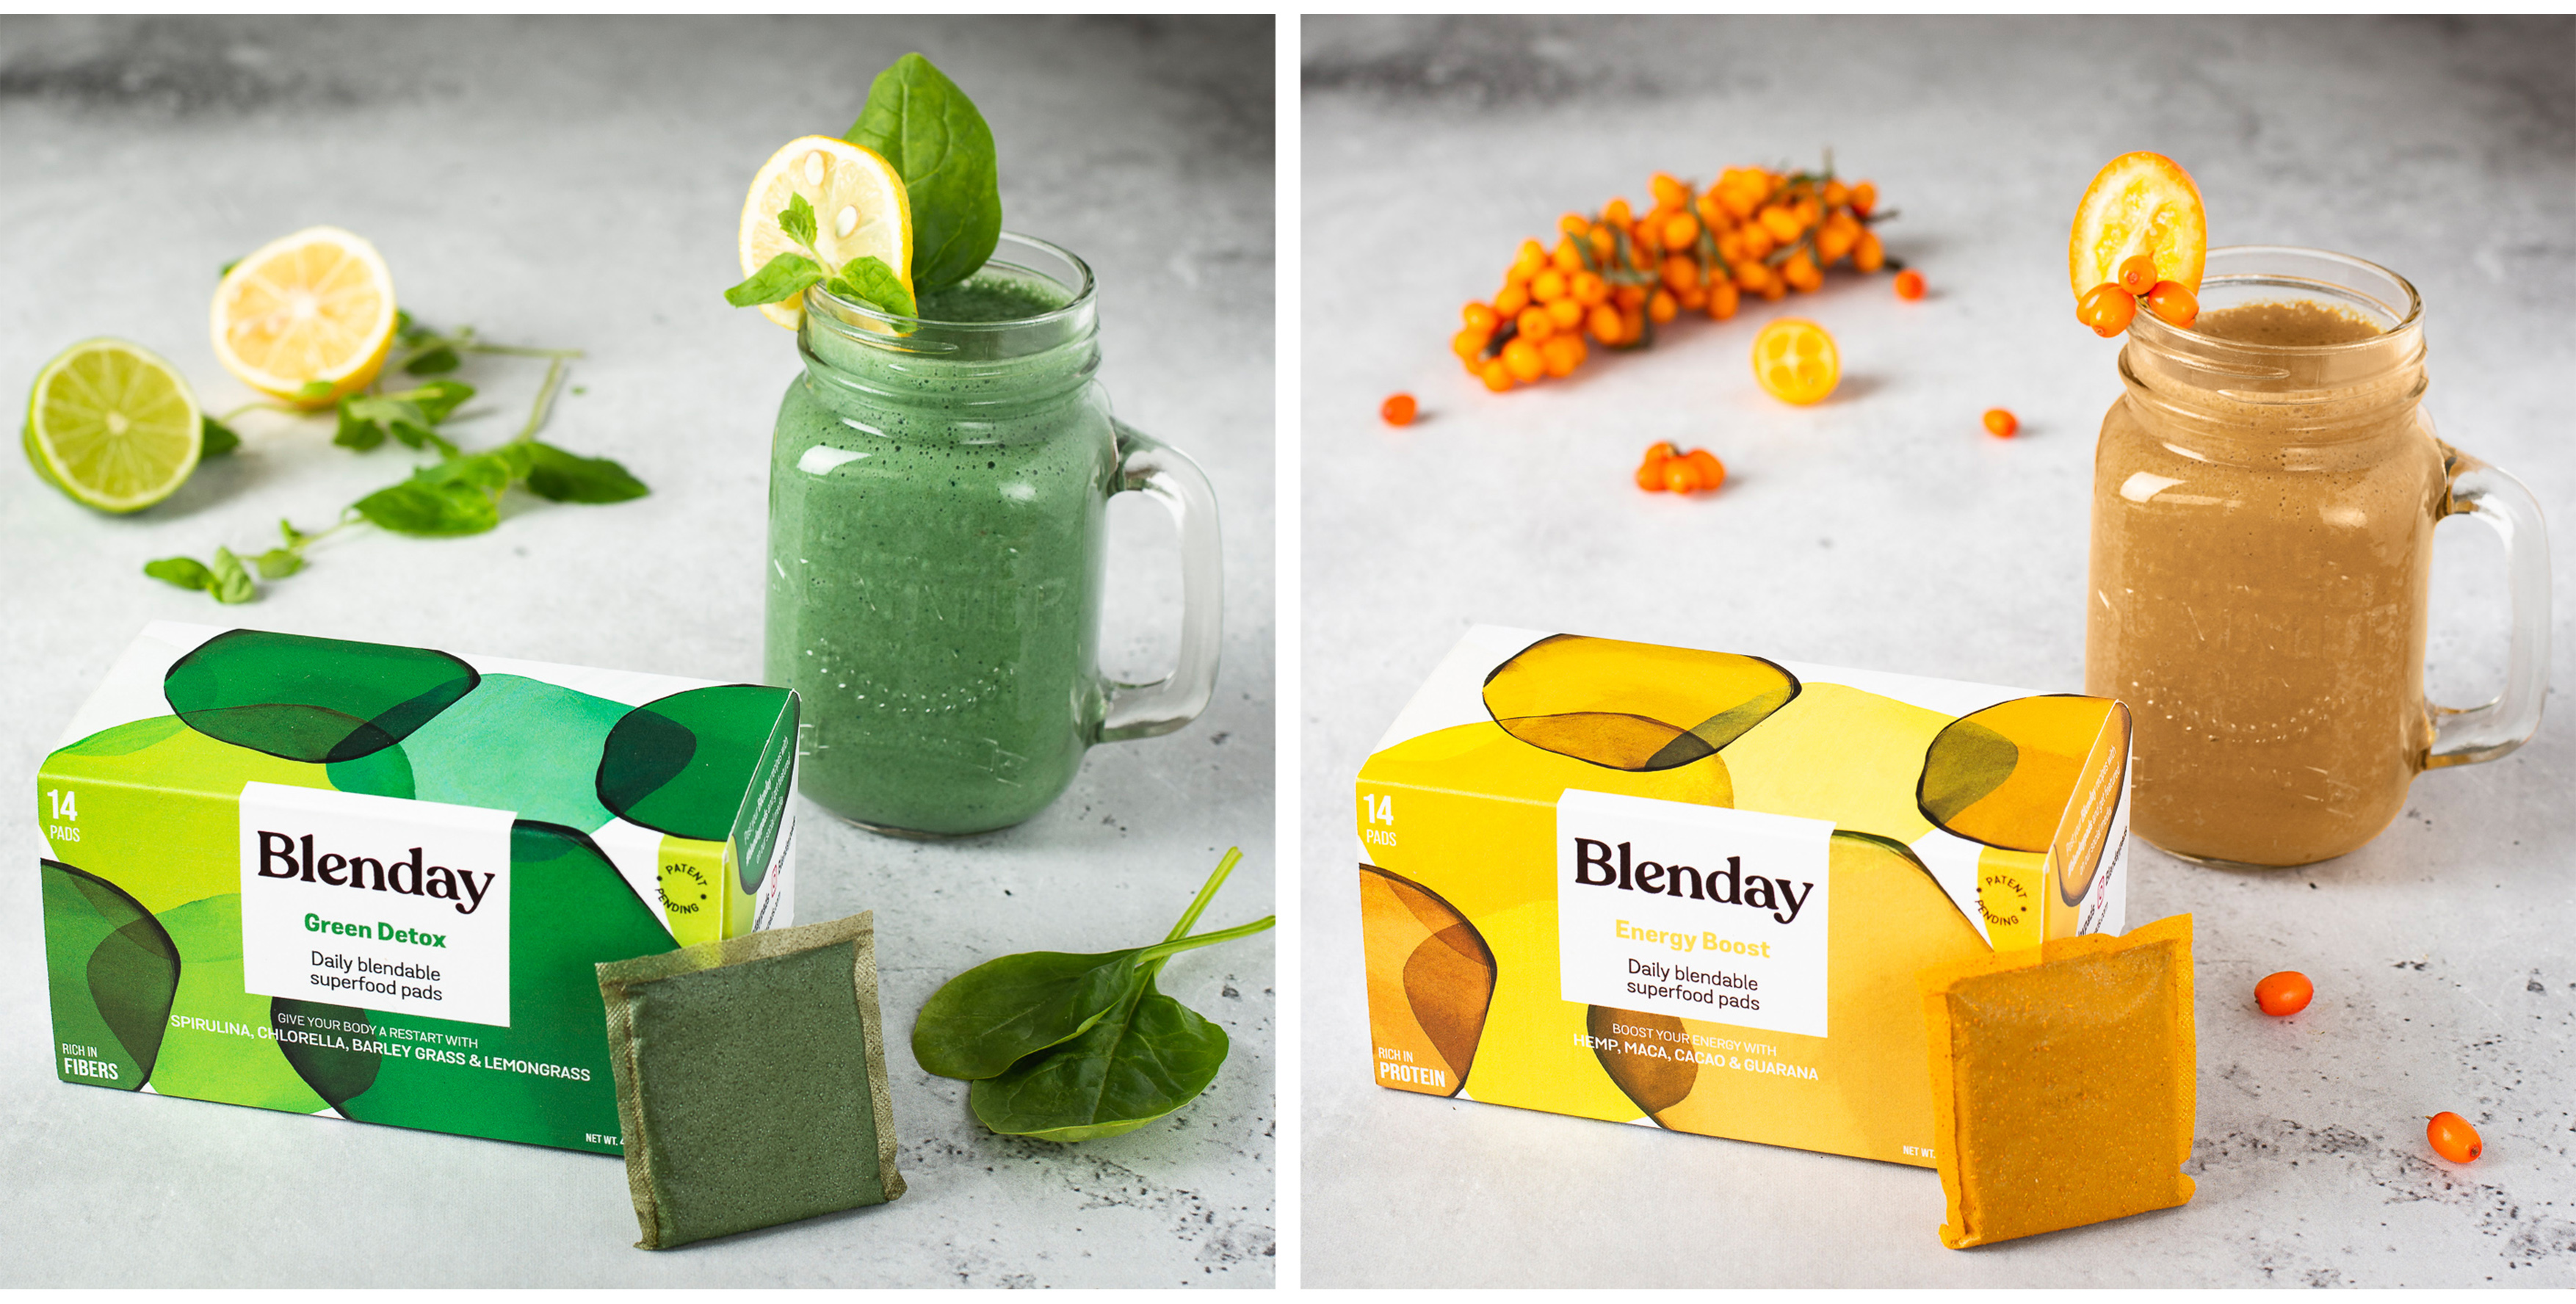 Blenday packaging